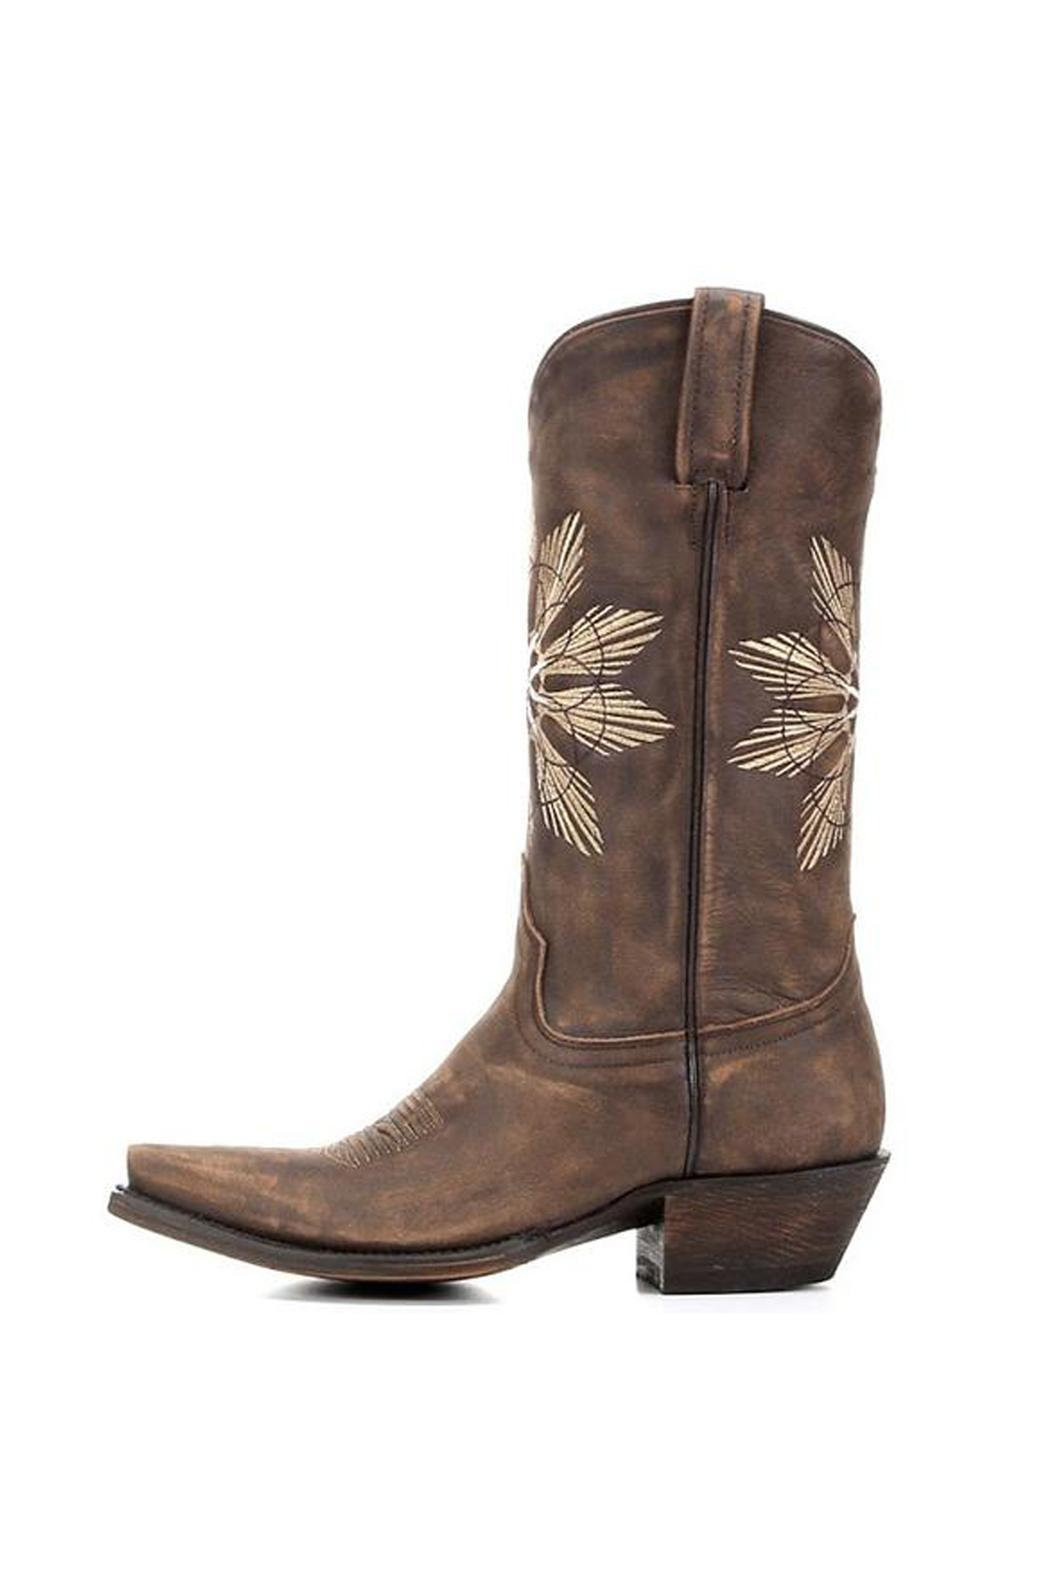 American Rebel Boot Company Cheyenne Saddle Boot - Side Cropped Image